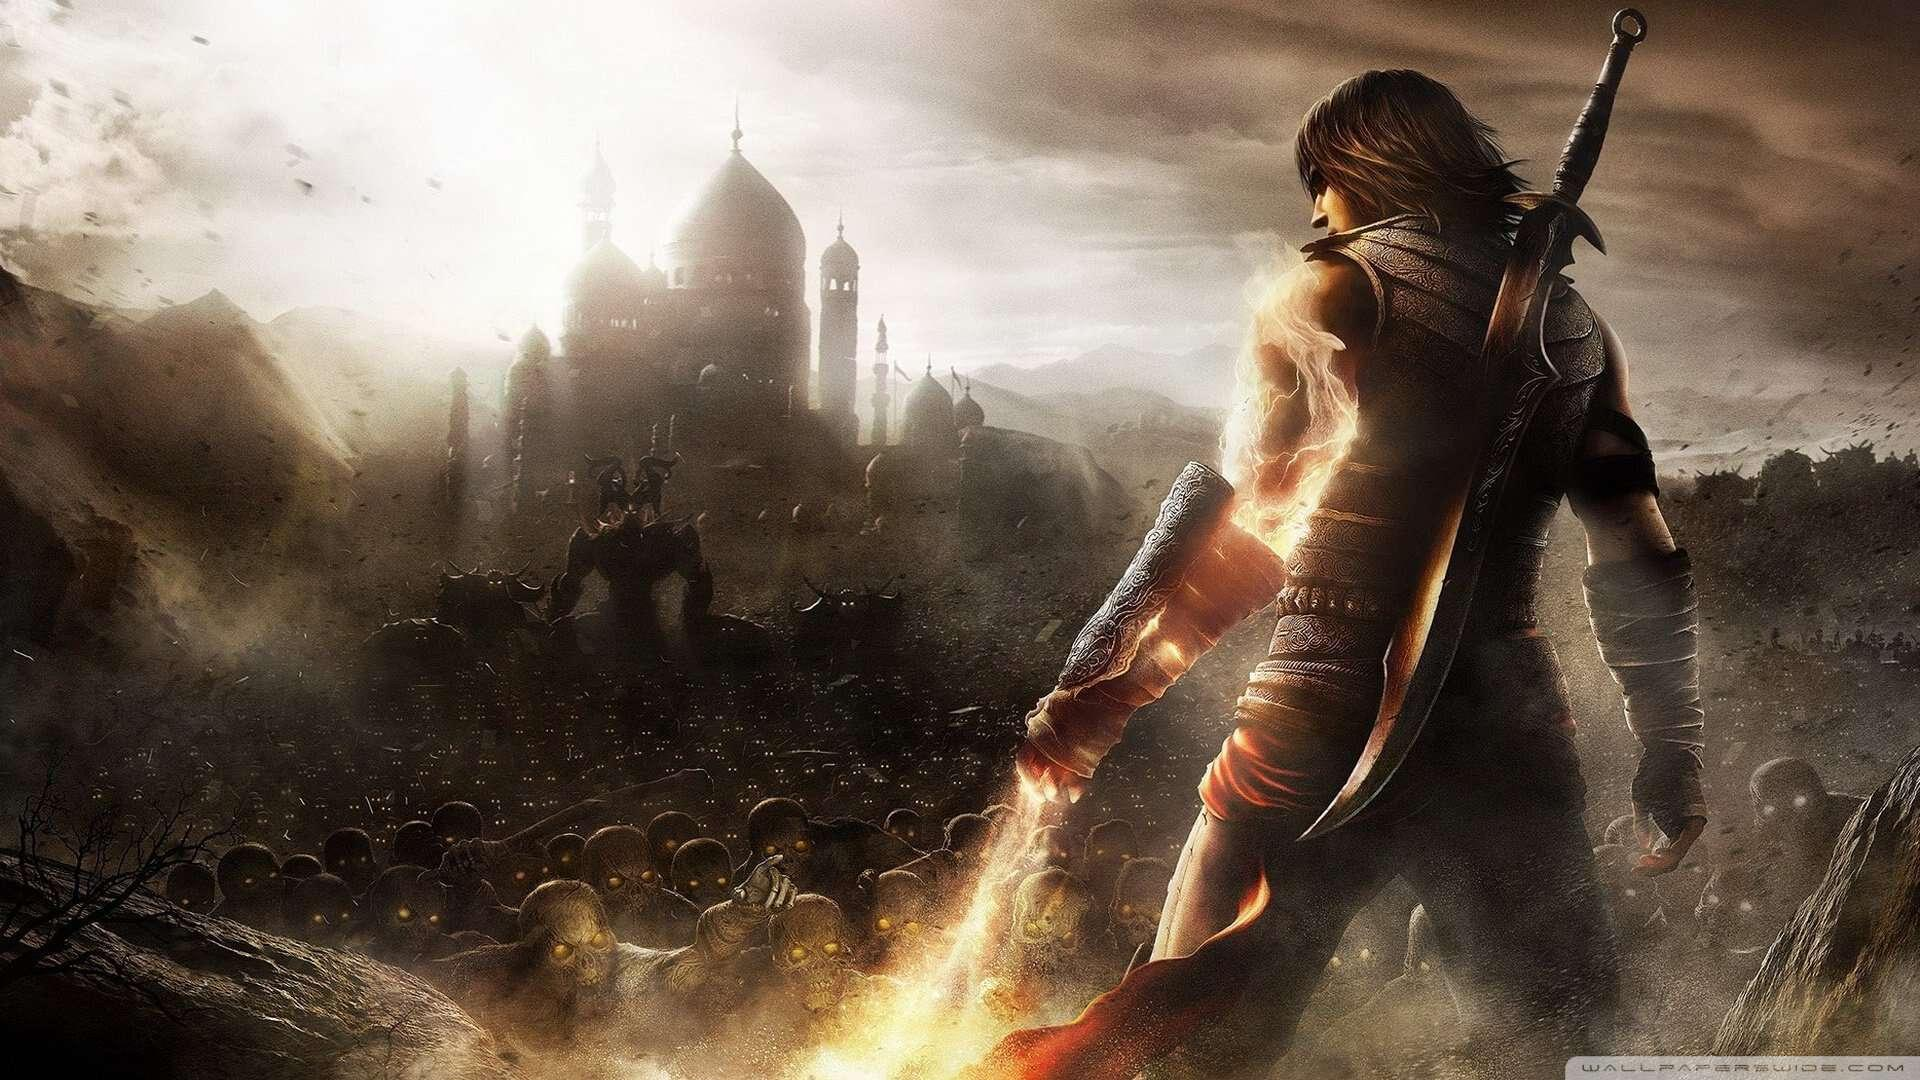 Prince of Persia 5: The Forgotten Sands Game Download